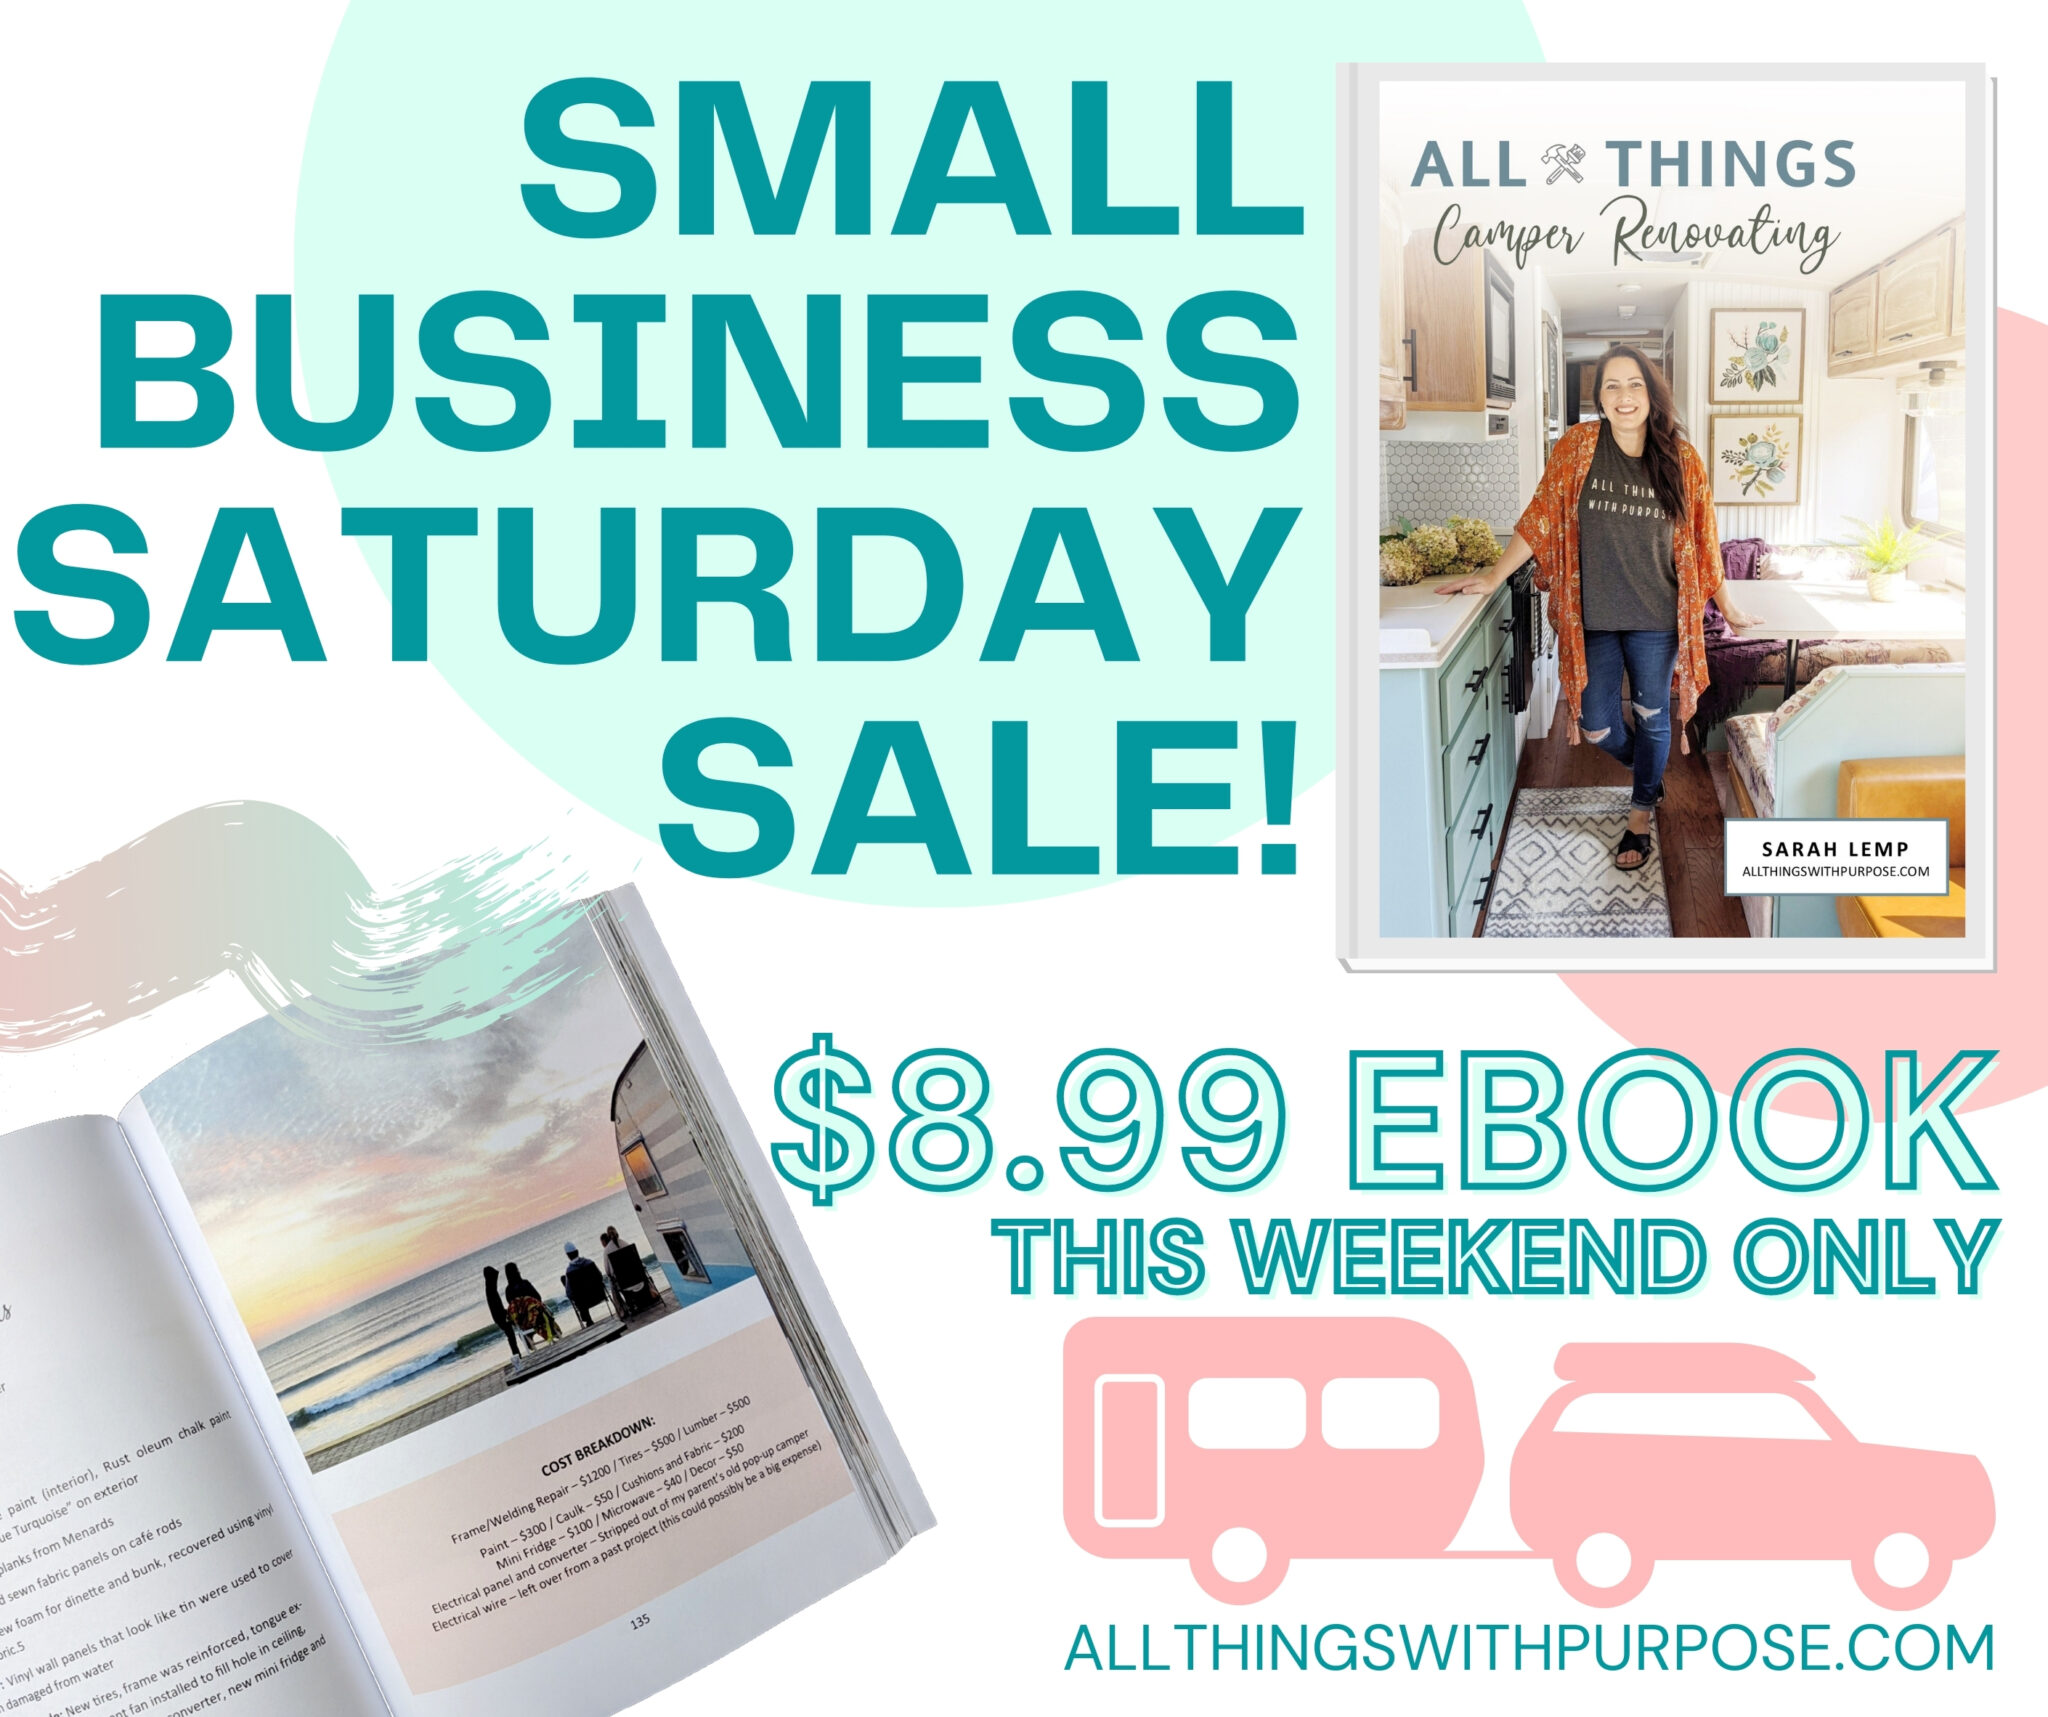 Small Business Saturday eBook Sale All Things with Purpose Sarah Lemp